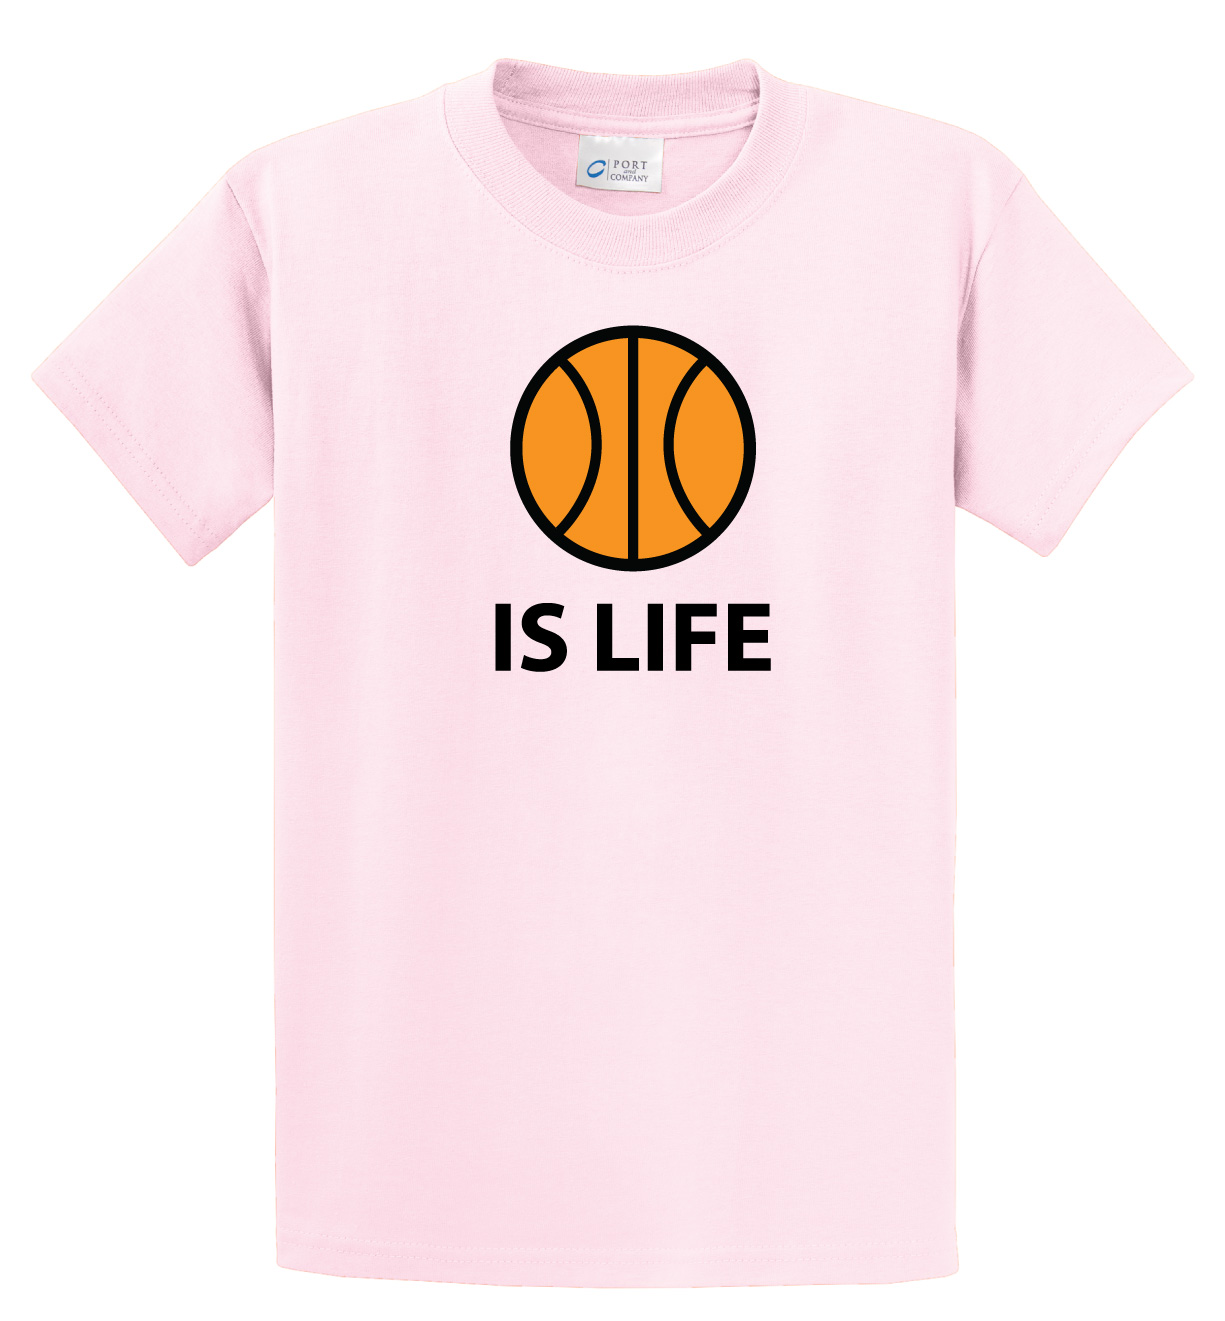 Ball Is Life Tshirt (basketball edition) in pale pink by Code Four Athletics